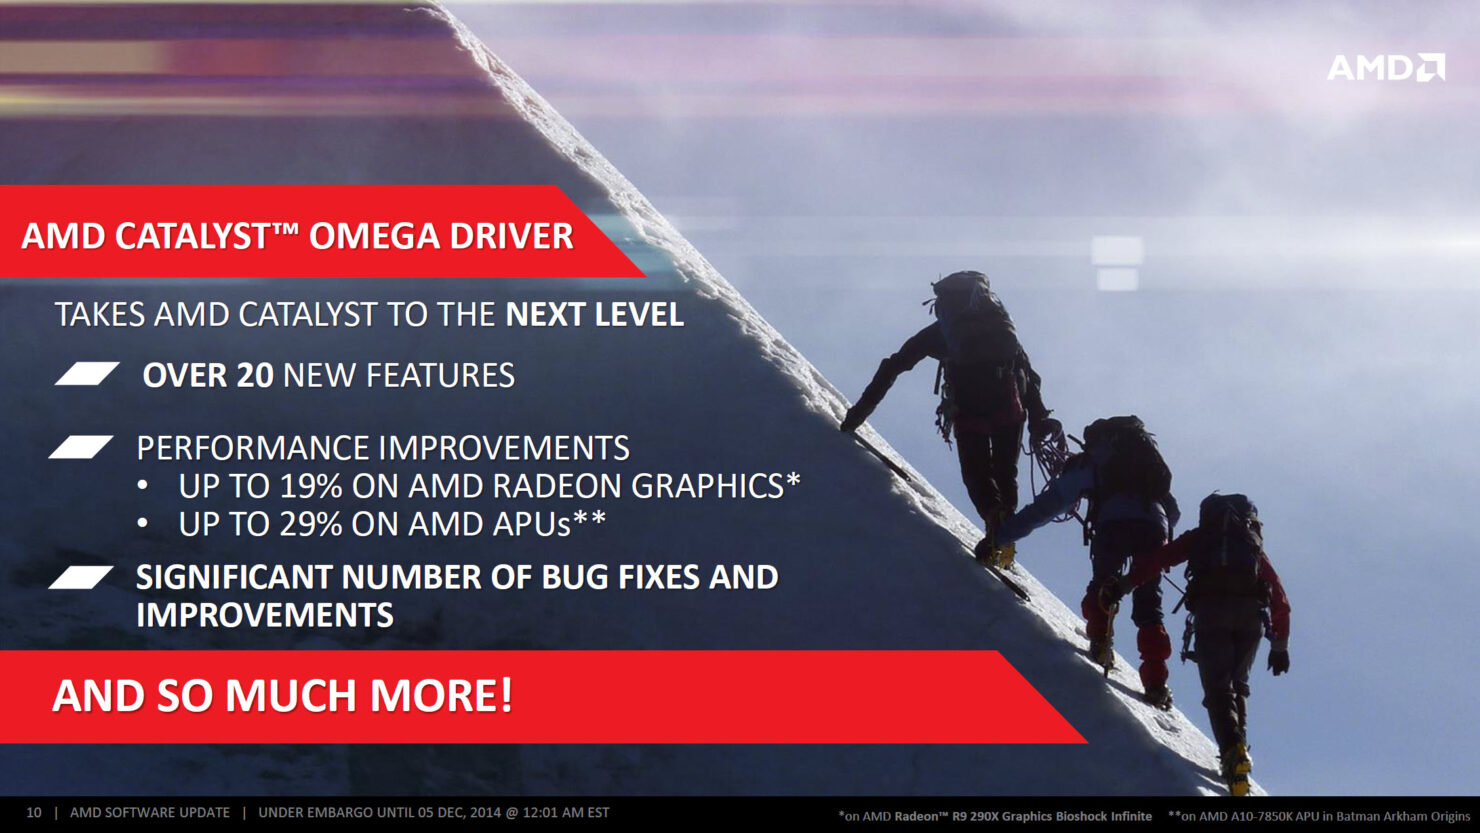 amd-catalyst-omega-driver-14-50_intro